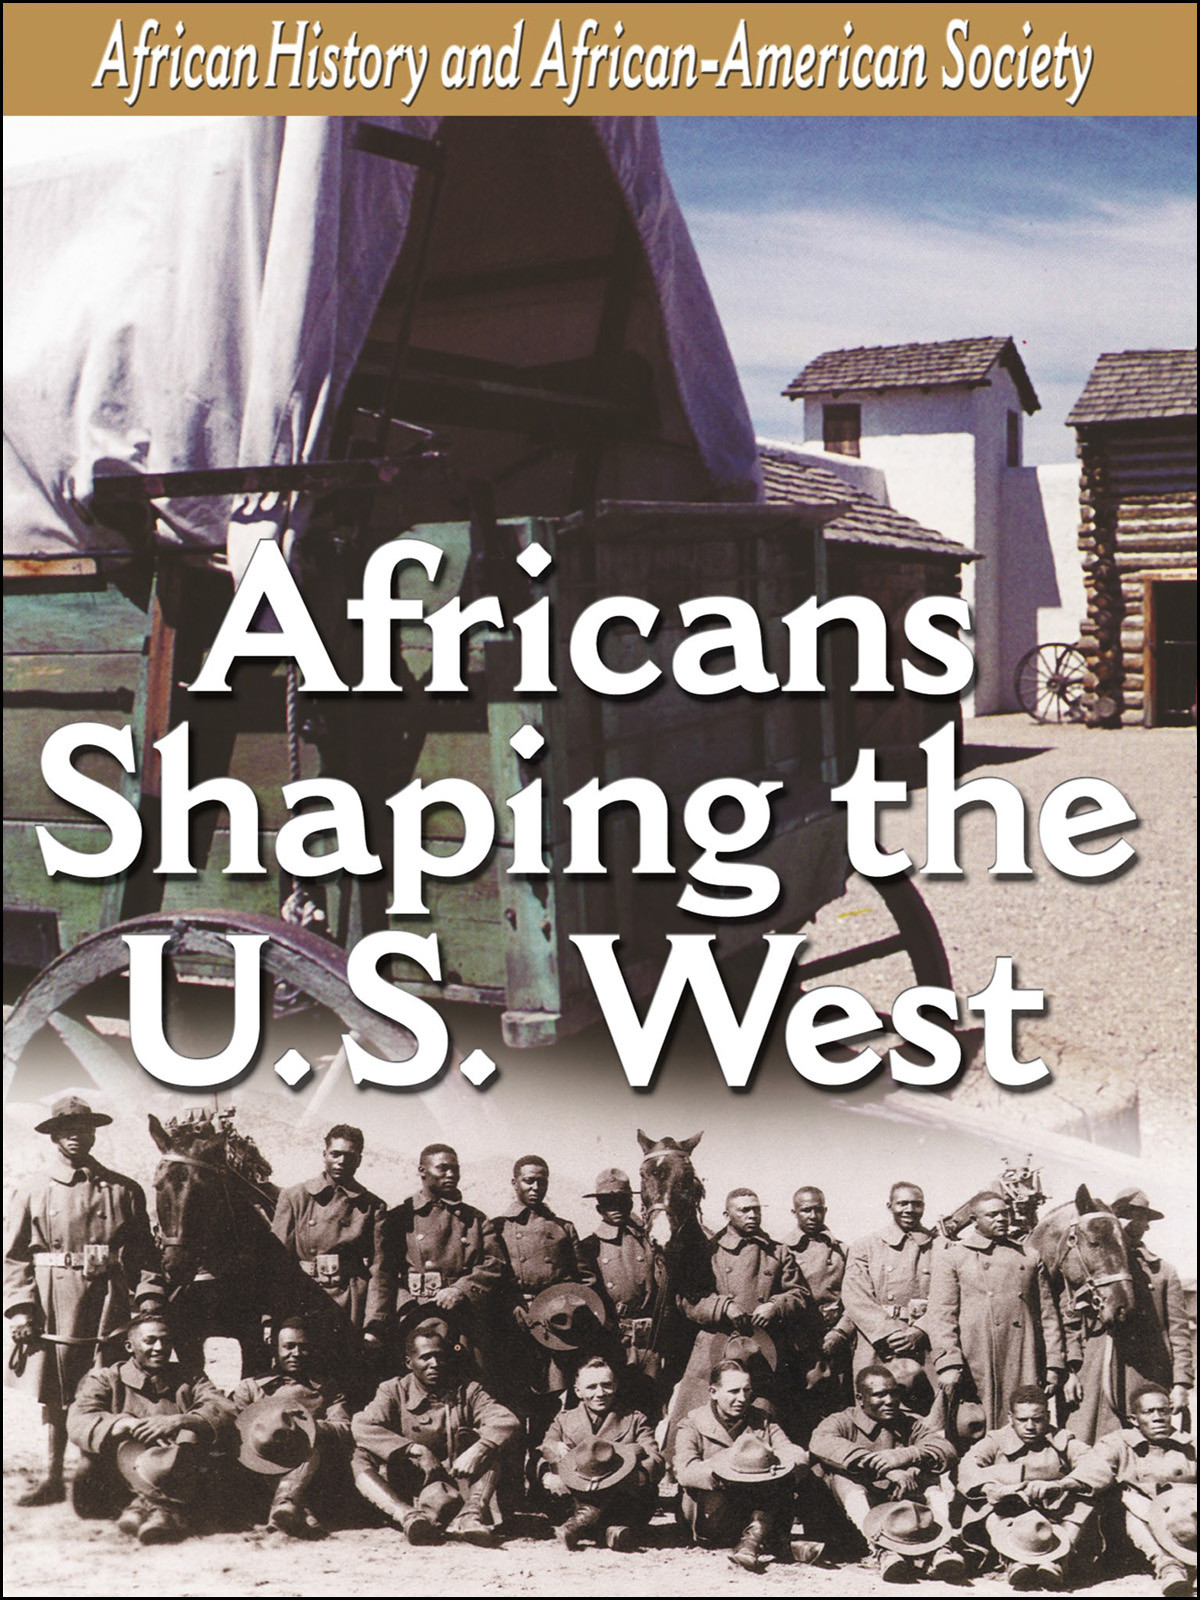 L906 - African-American History Africans Shaping the U.S. West